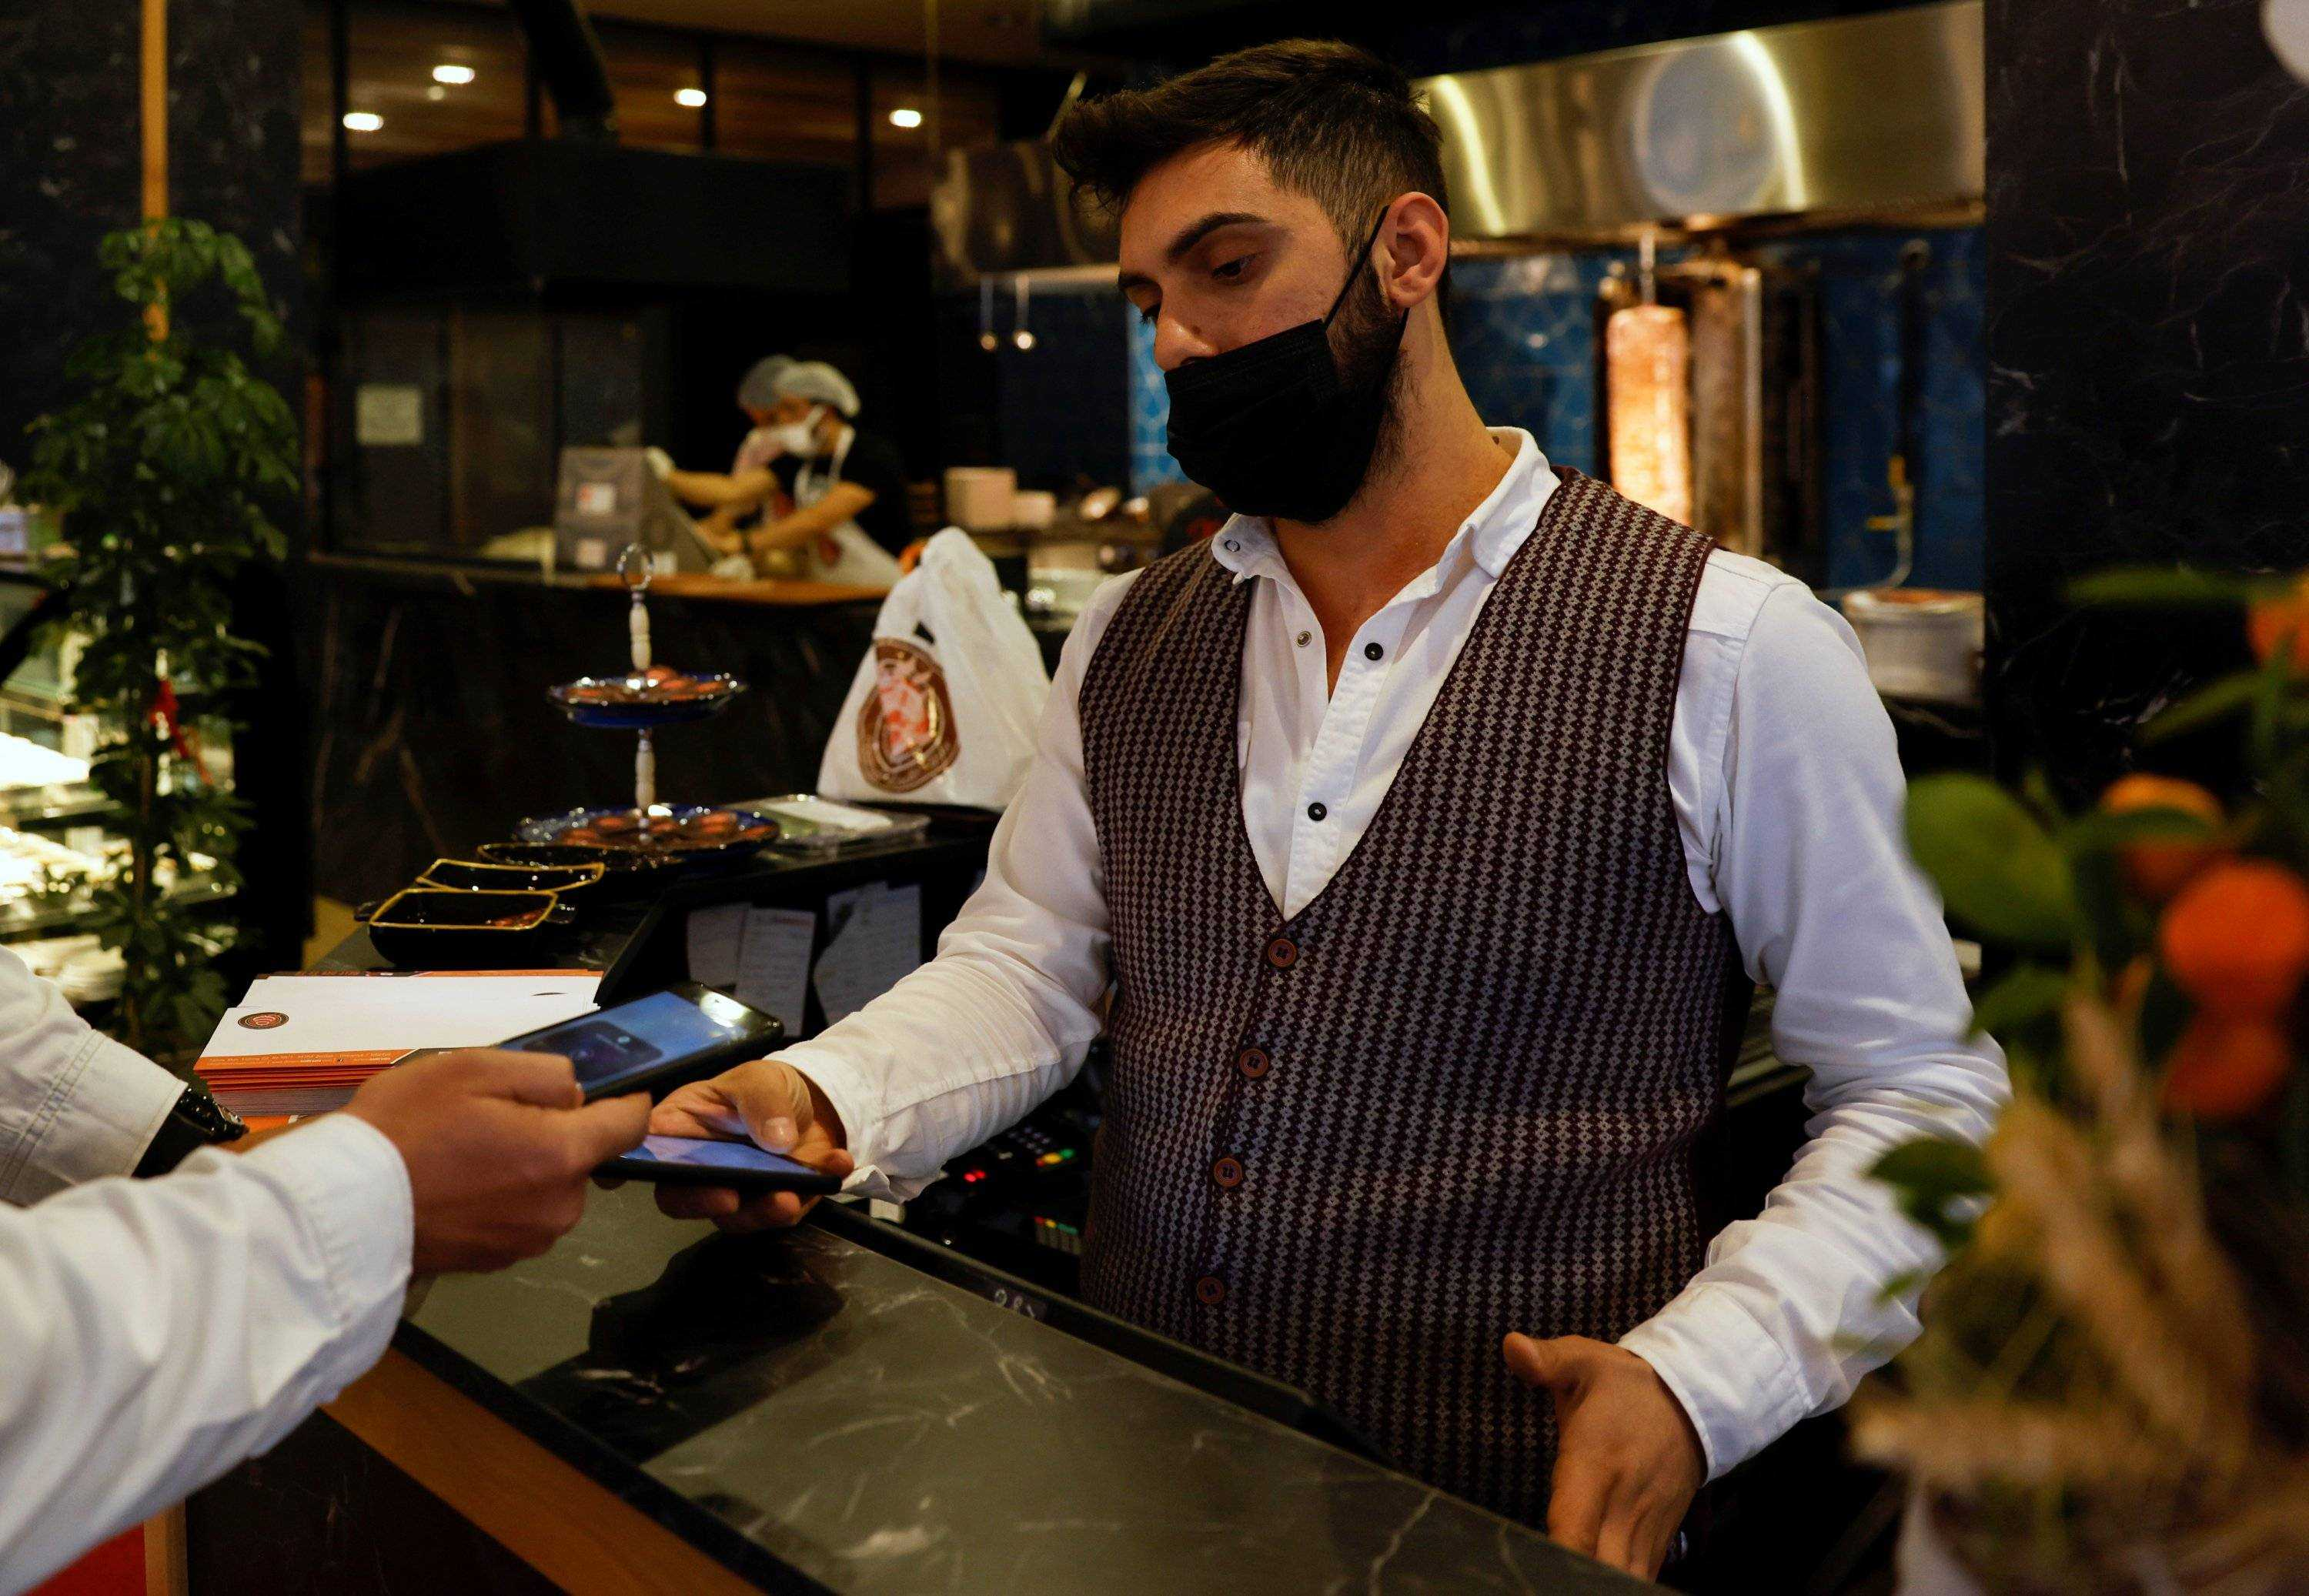 A cashier accepts payment through a cryptocurrency app at a kebab restaurant that accepts Bitcoin and Dexchain in Istanbul, Turkey on April 27, 2021 (Photo Reuters)